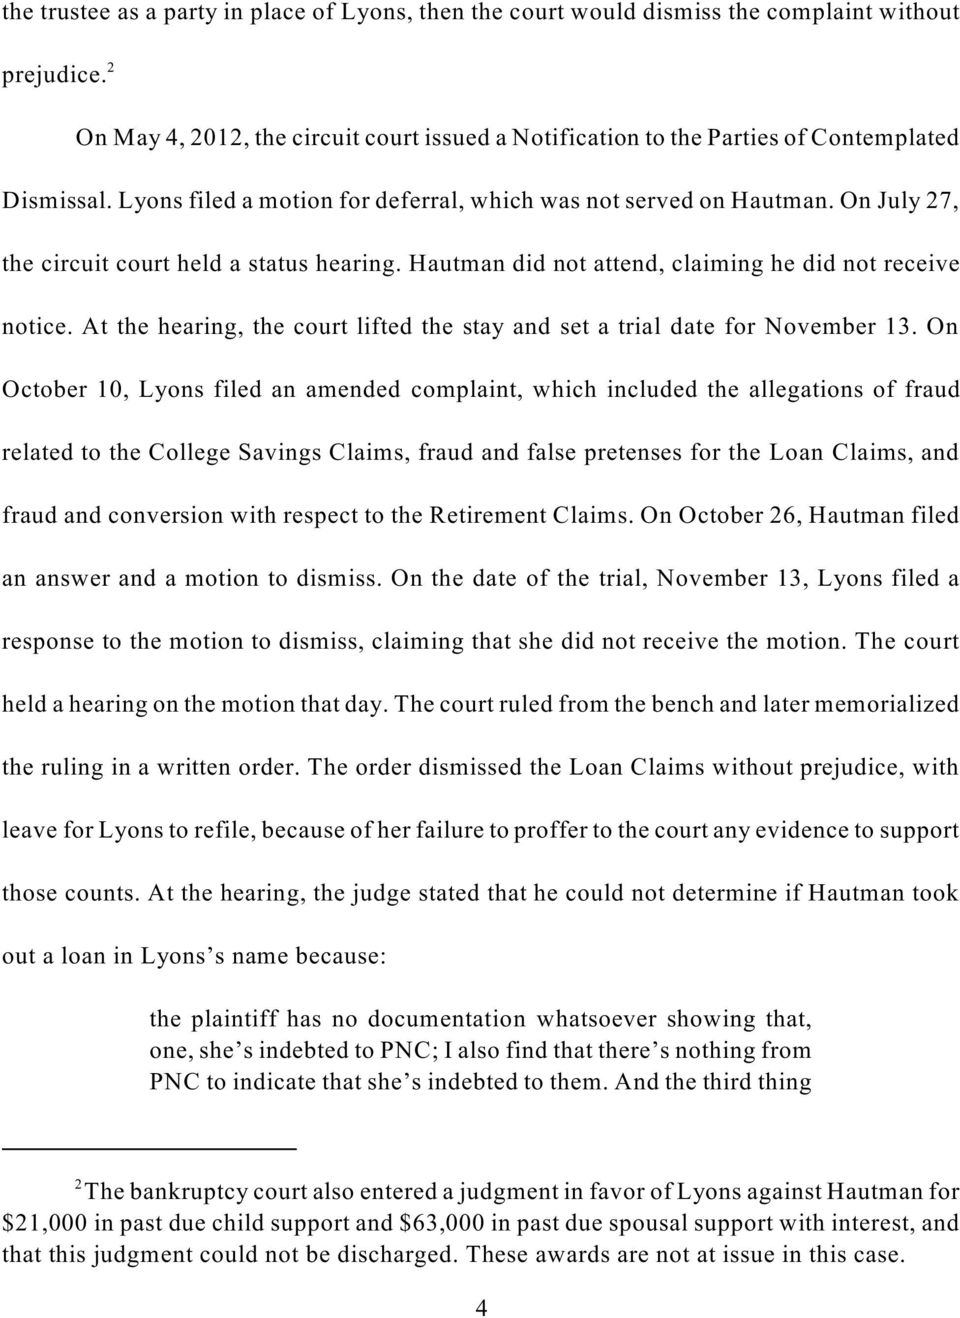 On July 27, the circuit court held a status hearing. Hautman did not attend, claiming he did not receive notice. At the hearing, the court lifted the stay and set a trial date for November 13.